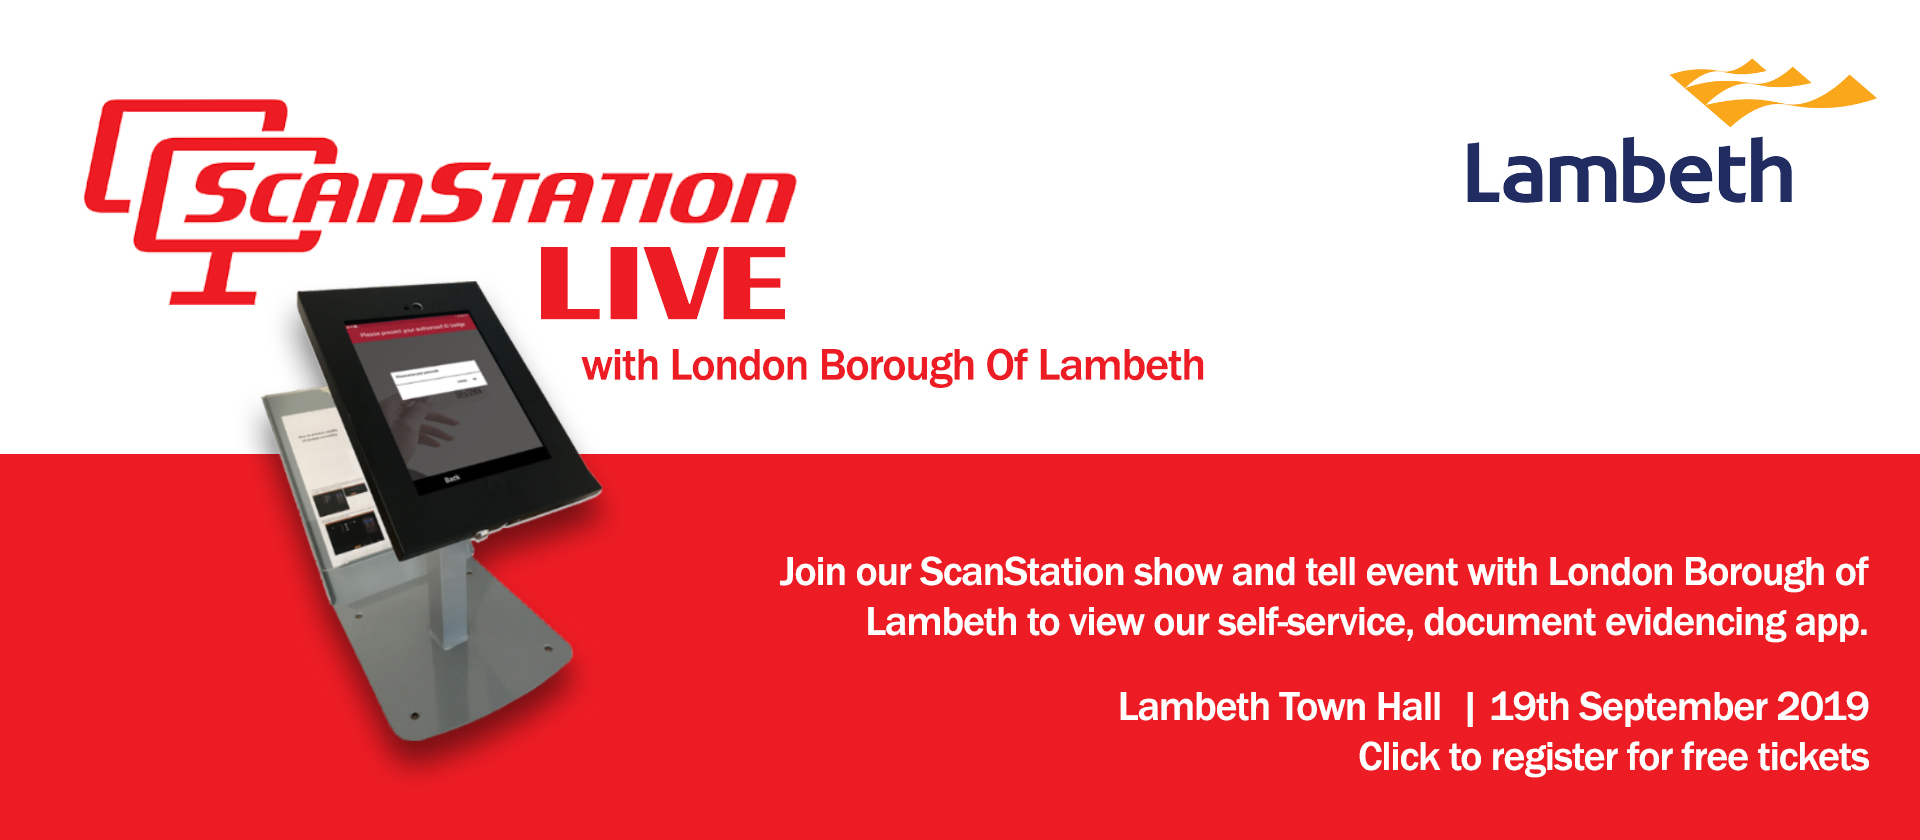 Looking Local - ScanStation Live at London Borough of Lambeth